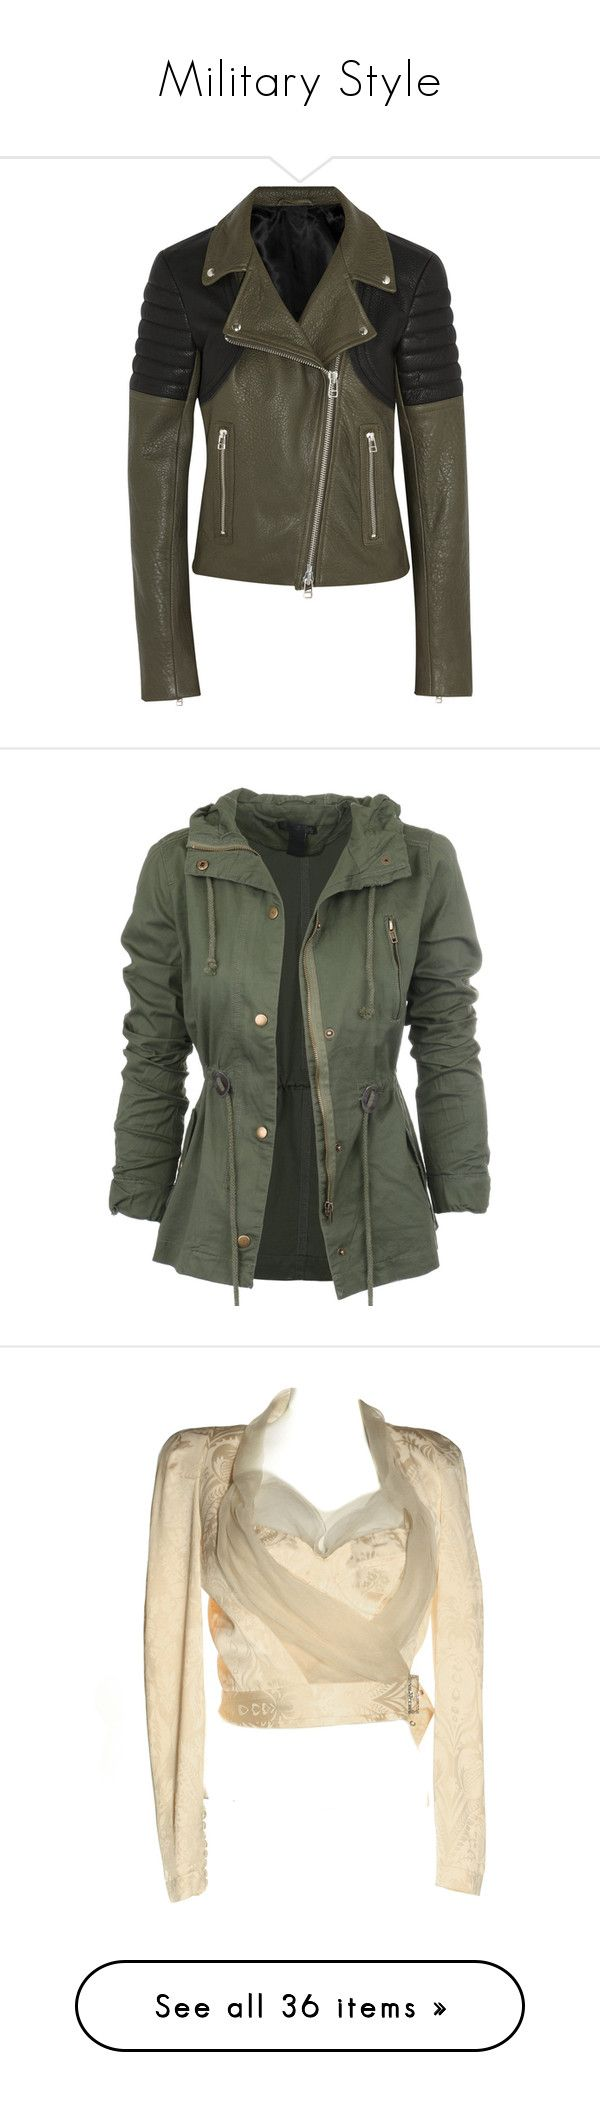 """""""Military Style"""" by milah-monroe ❤ liked on Polyvore featuring outerwear, jackets, coats, coats & jackets, leather jackets, army green, zipper jacket, army green jacket, lapel jacket and rider jacket"""